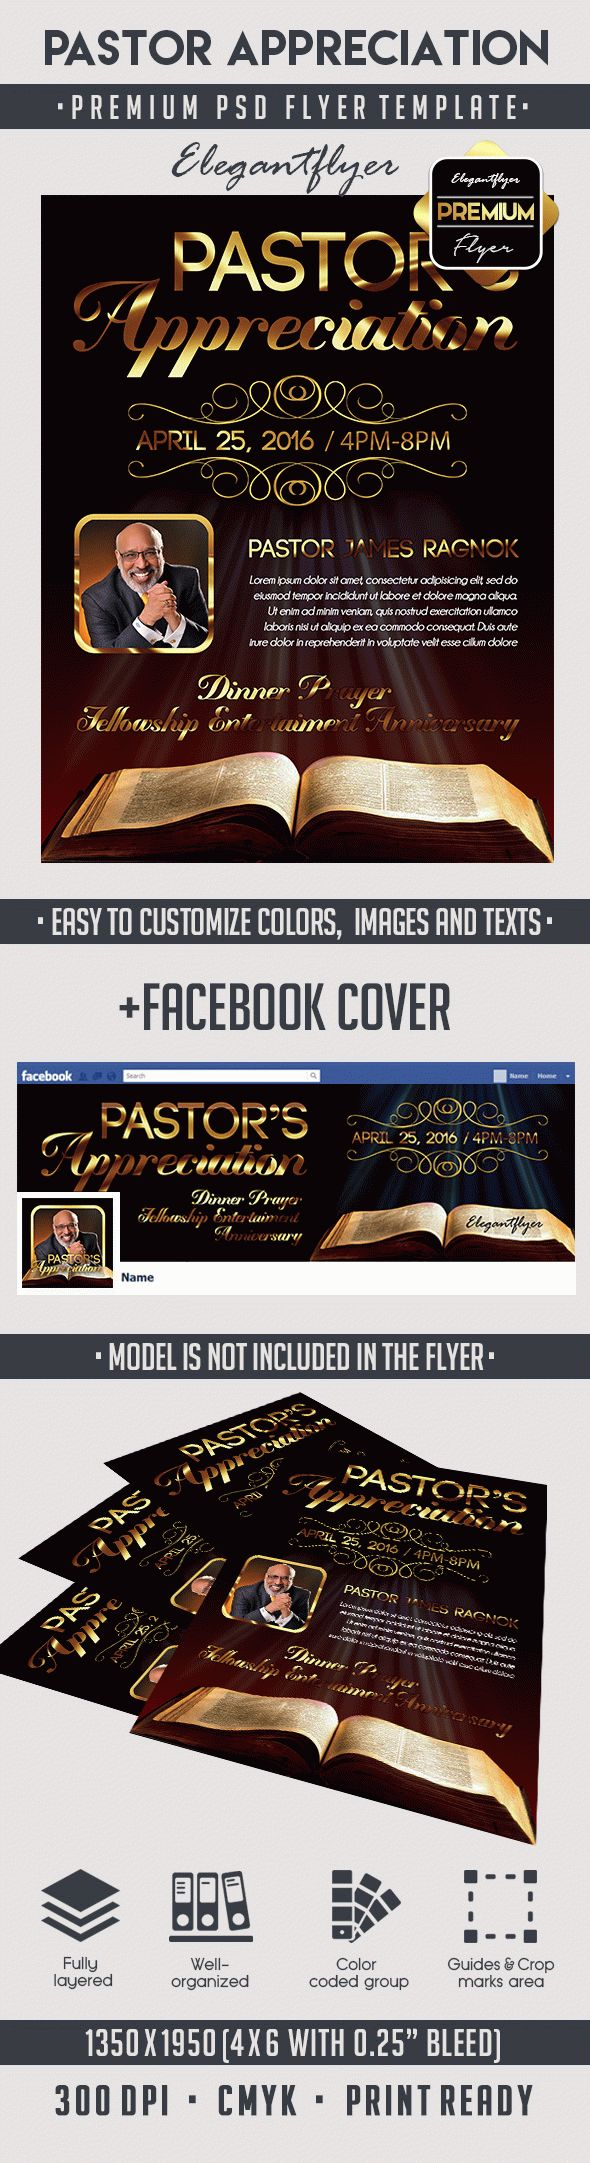 Pastor Appreciation – Premium Flyer PSD Template